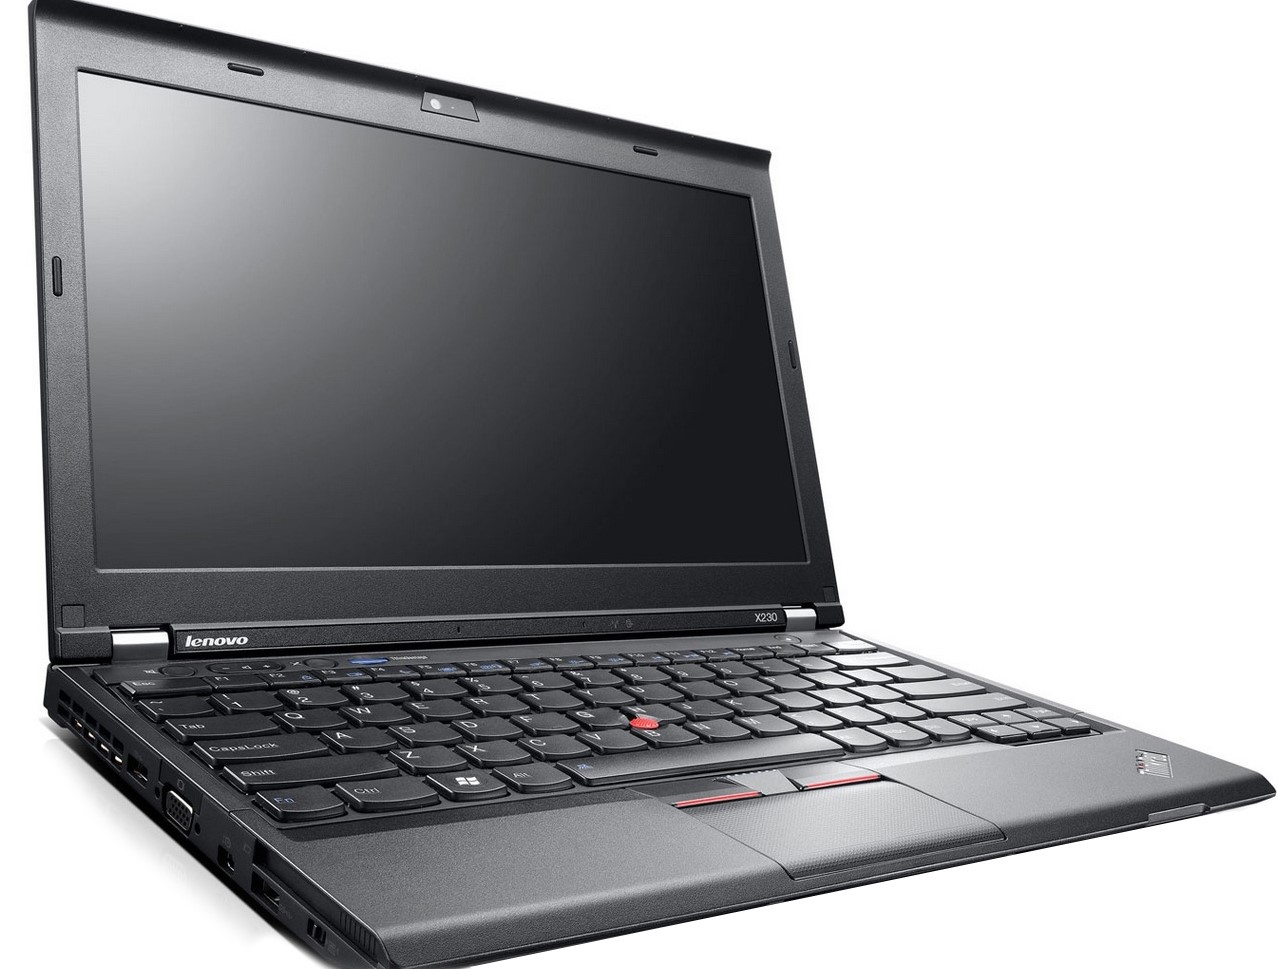 Thinkpad X230 / i5 2,6GHz / 4GB / 320GB HDD / WIN 10